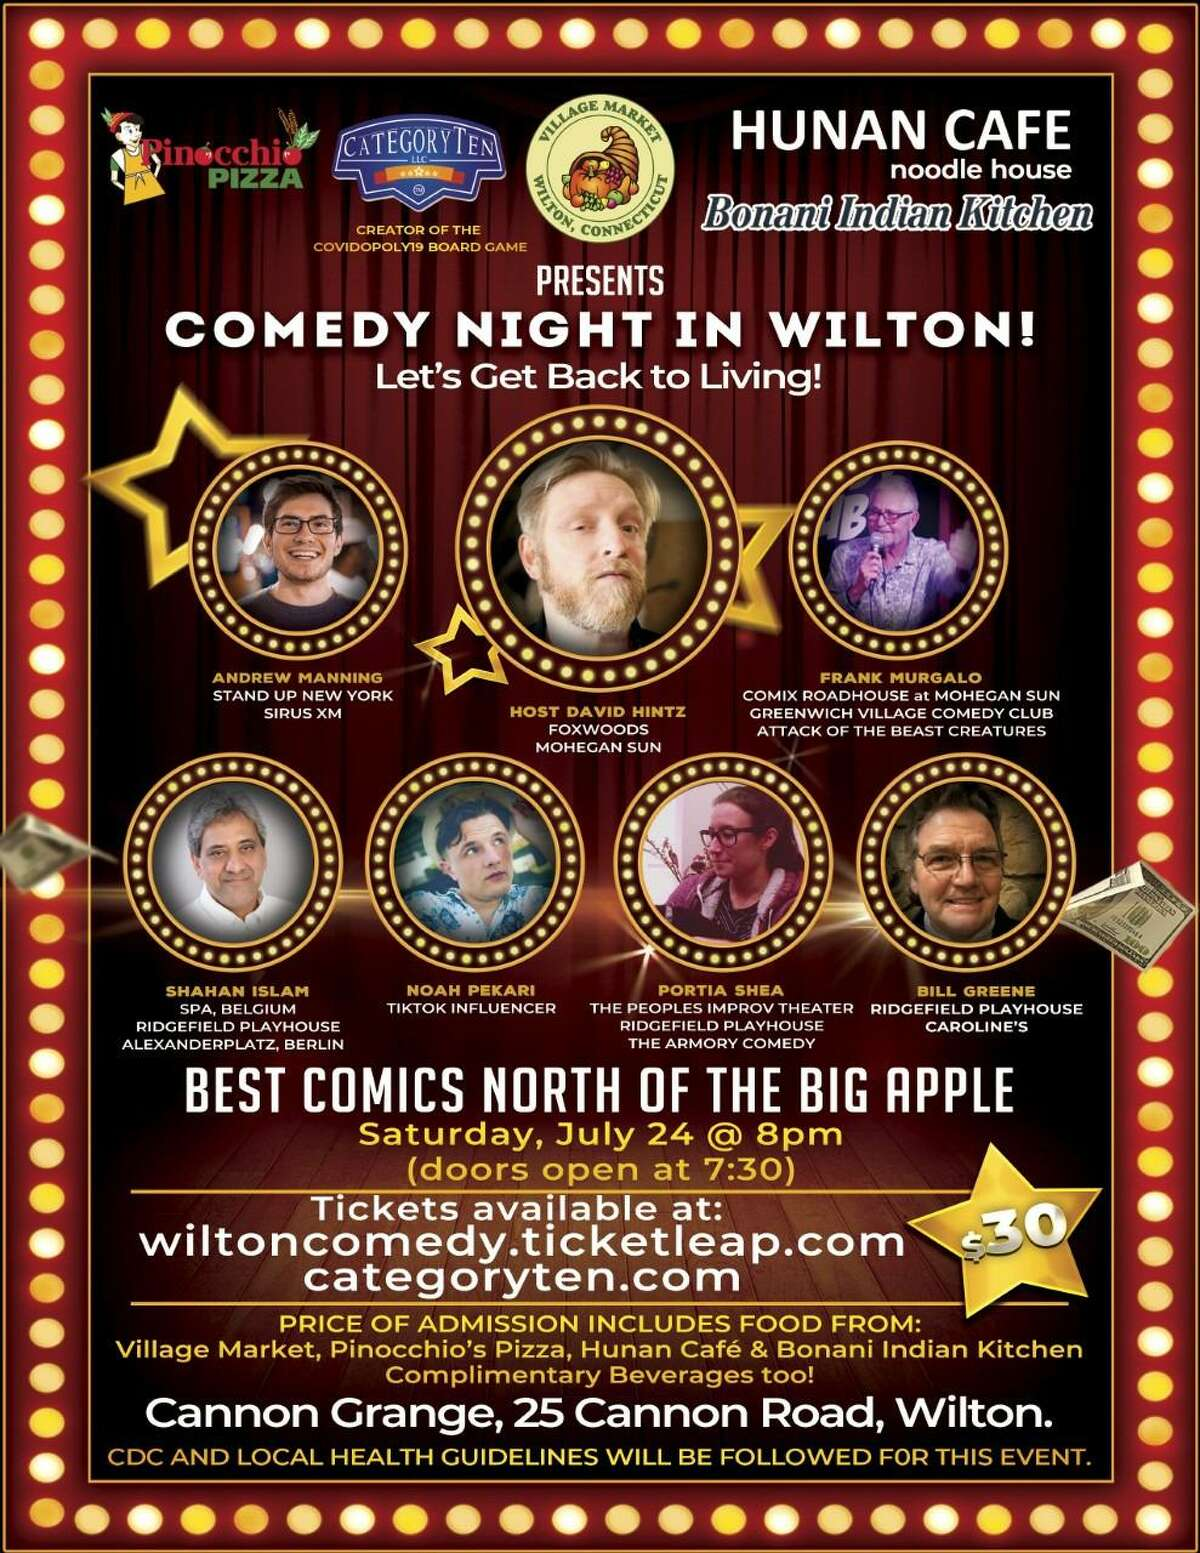 Now that businesses are fully reopening amid the coronavirus pandemic, CategoryTen, local restaurants, Cannon Grange, Shahan Islam of Wilton, and comedians are trying to bring back quality live entertainment with a Comedy Night in the town at the community organization on Saturday, July 24, at 8 p.m.